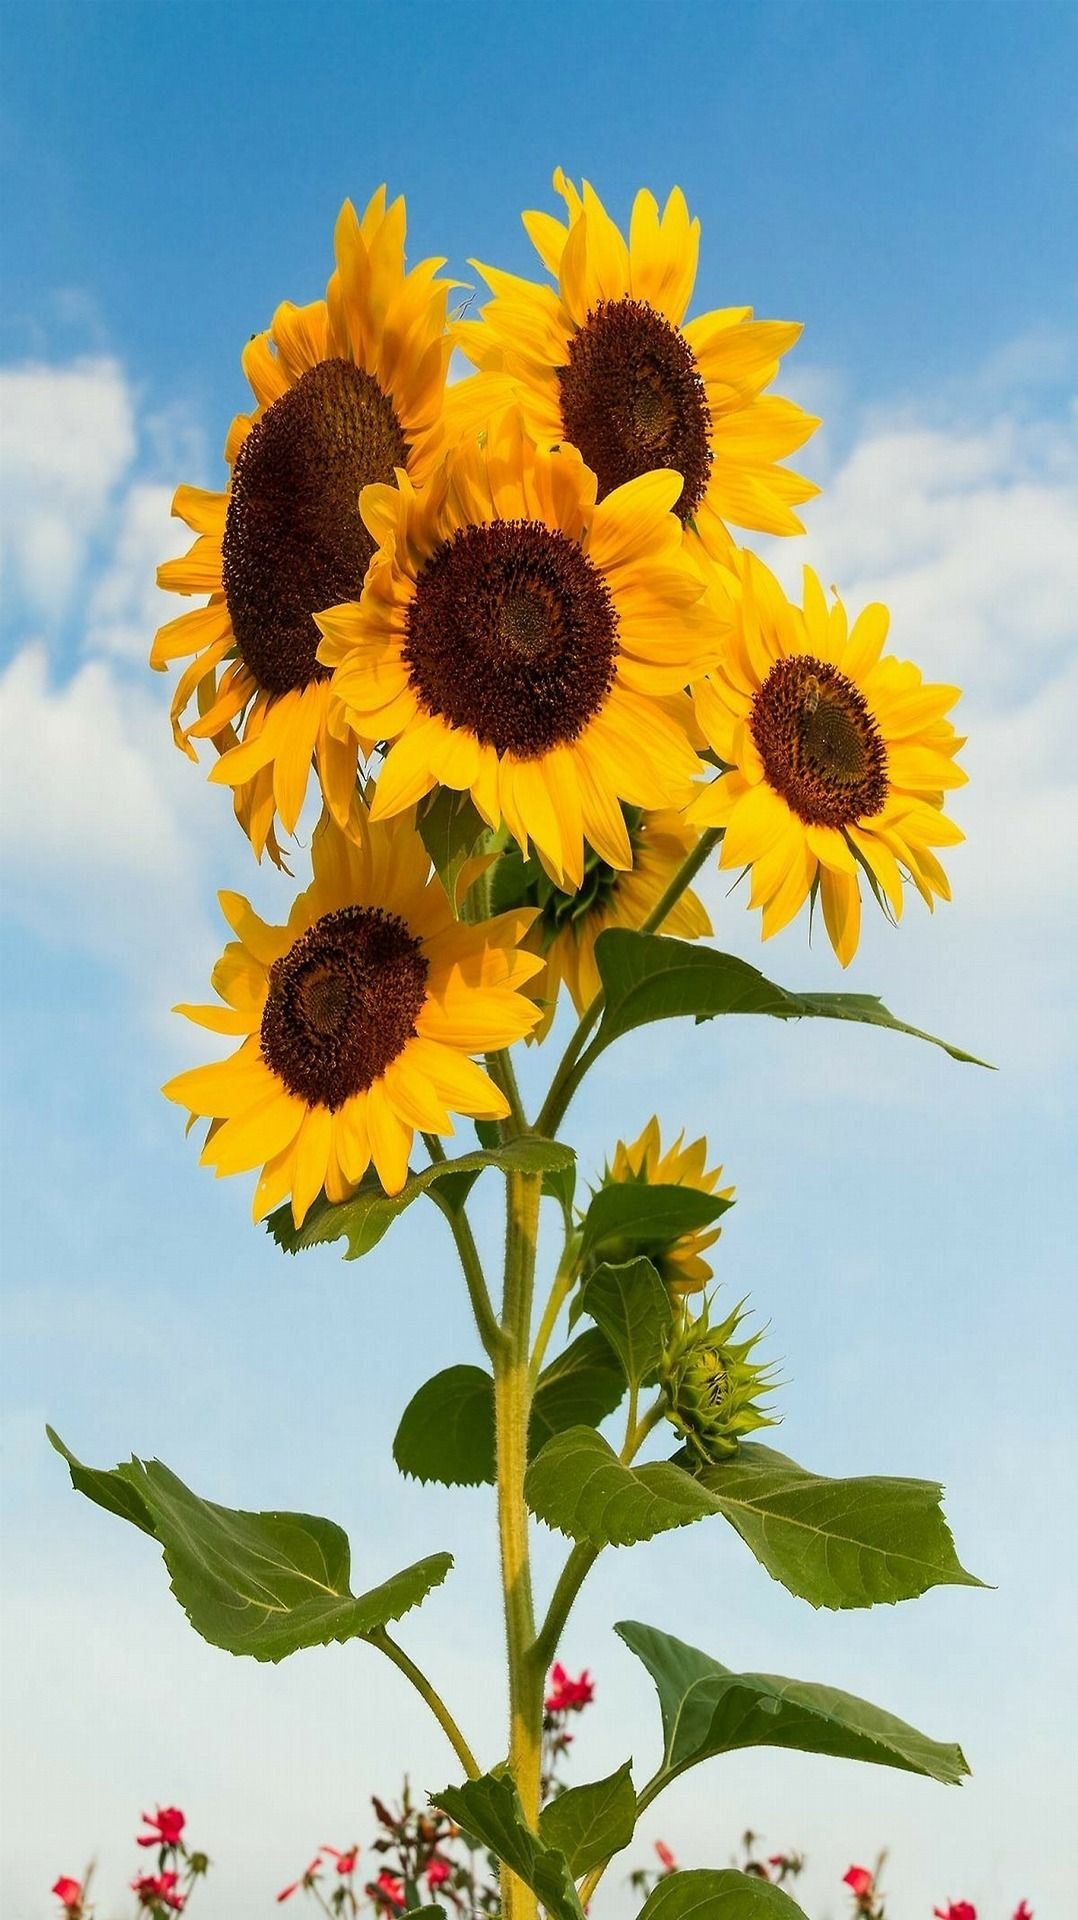 Flowers - Beautiful Sunflowers bloom standing tall against ...